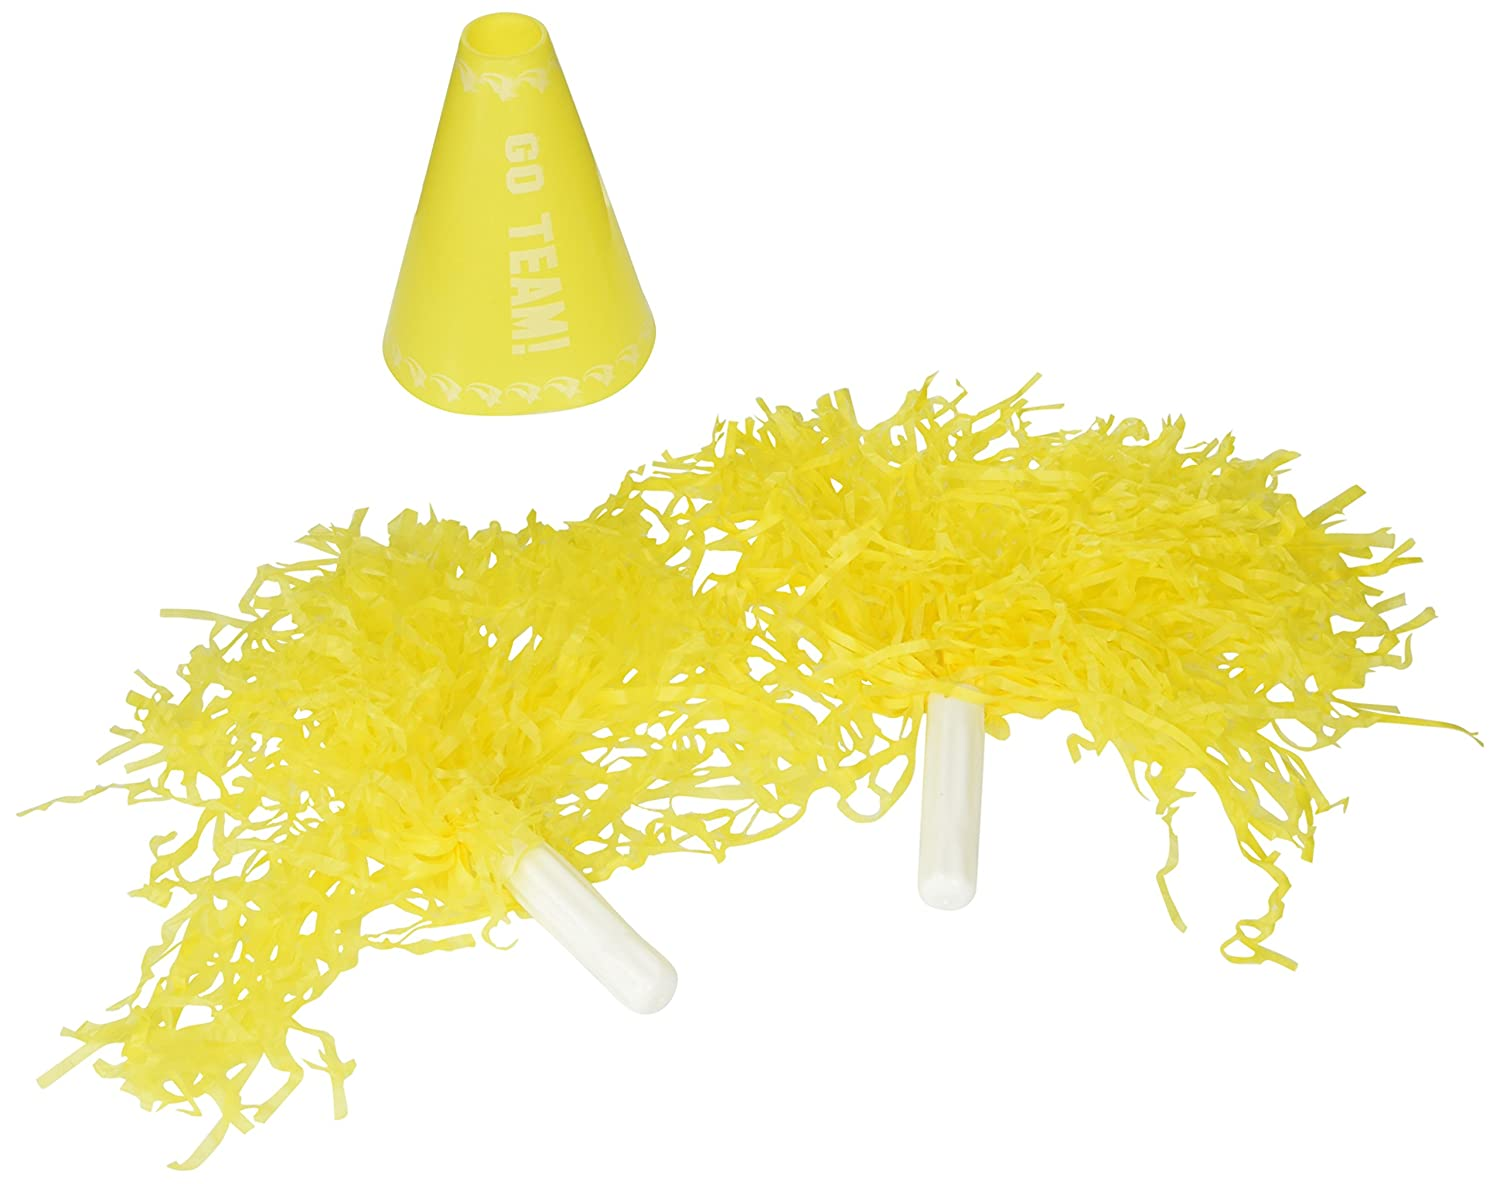 Cheerleader Pom Pom and Megaphone (Black)